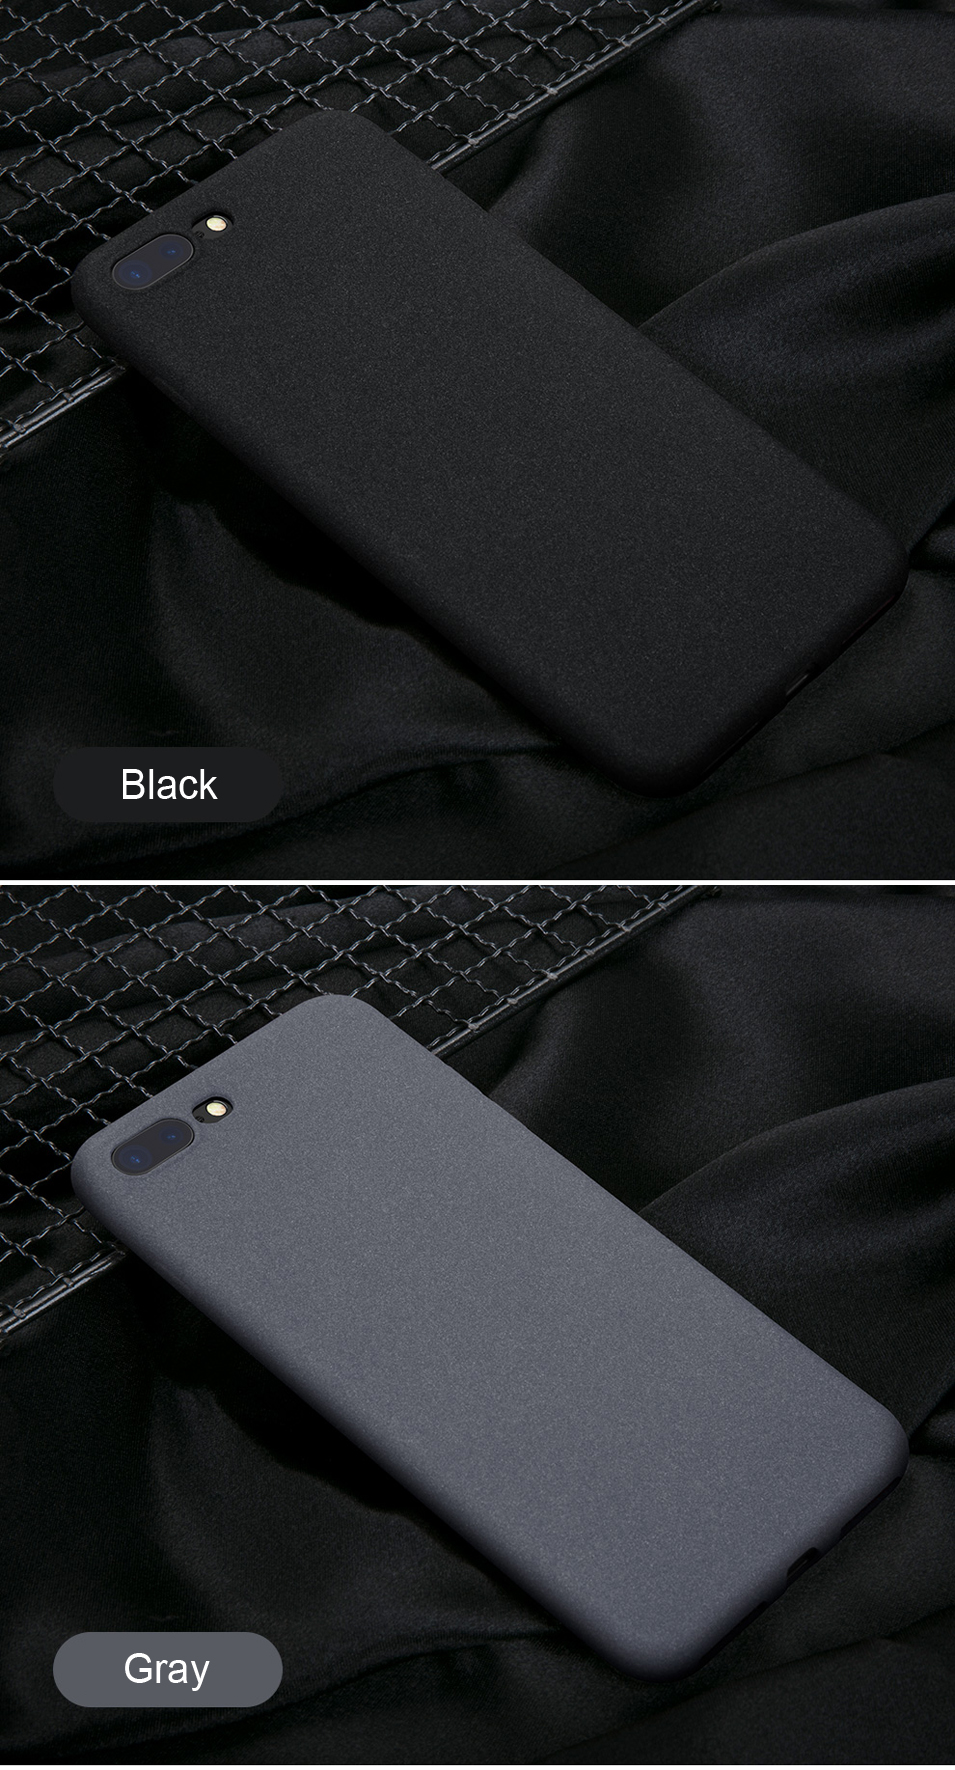 Soft Silicone Phone Case for Xiaomi Note 2 A1 Mix 2s 5X Max 2 Case Cover for Redmi Note 5A Prime 2S 5 Plus Case Matte Back Cover (15)